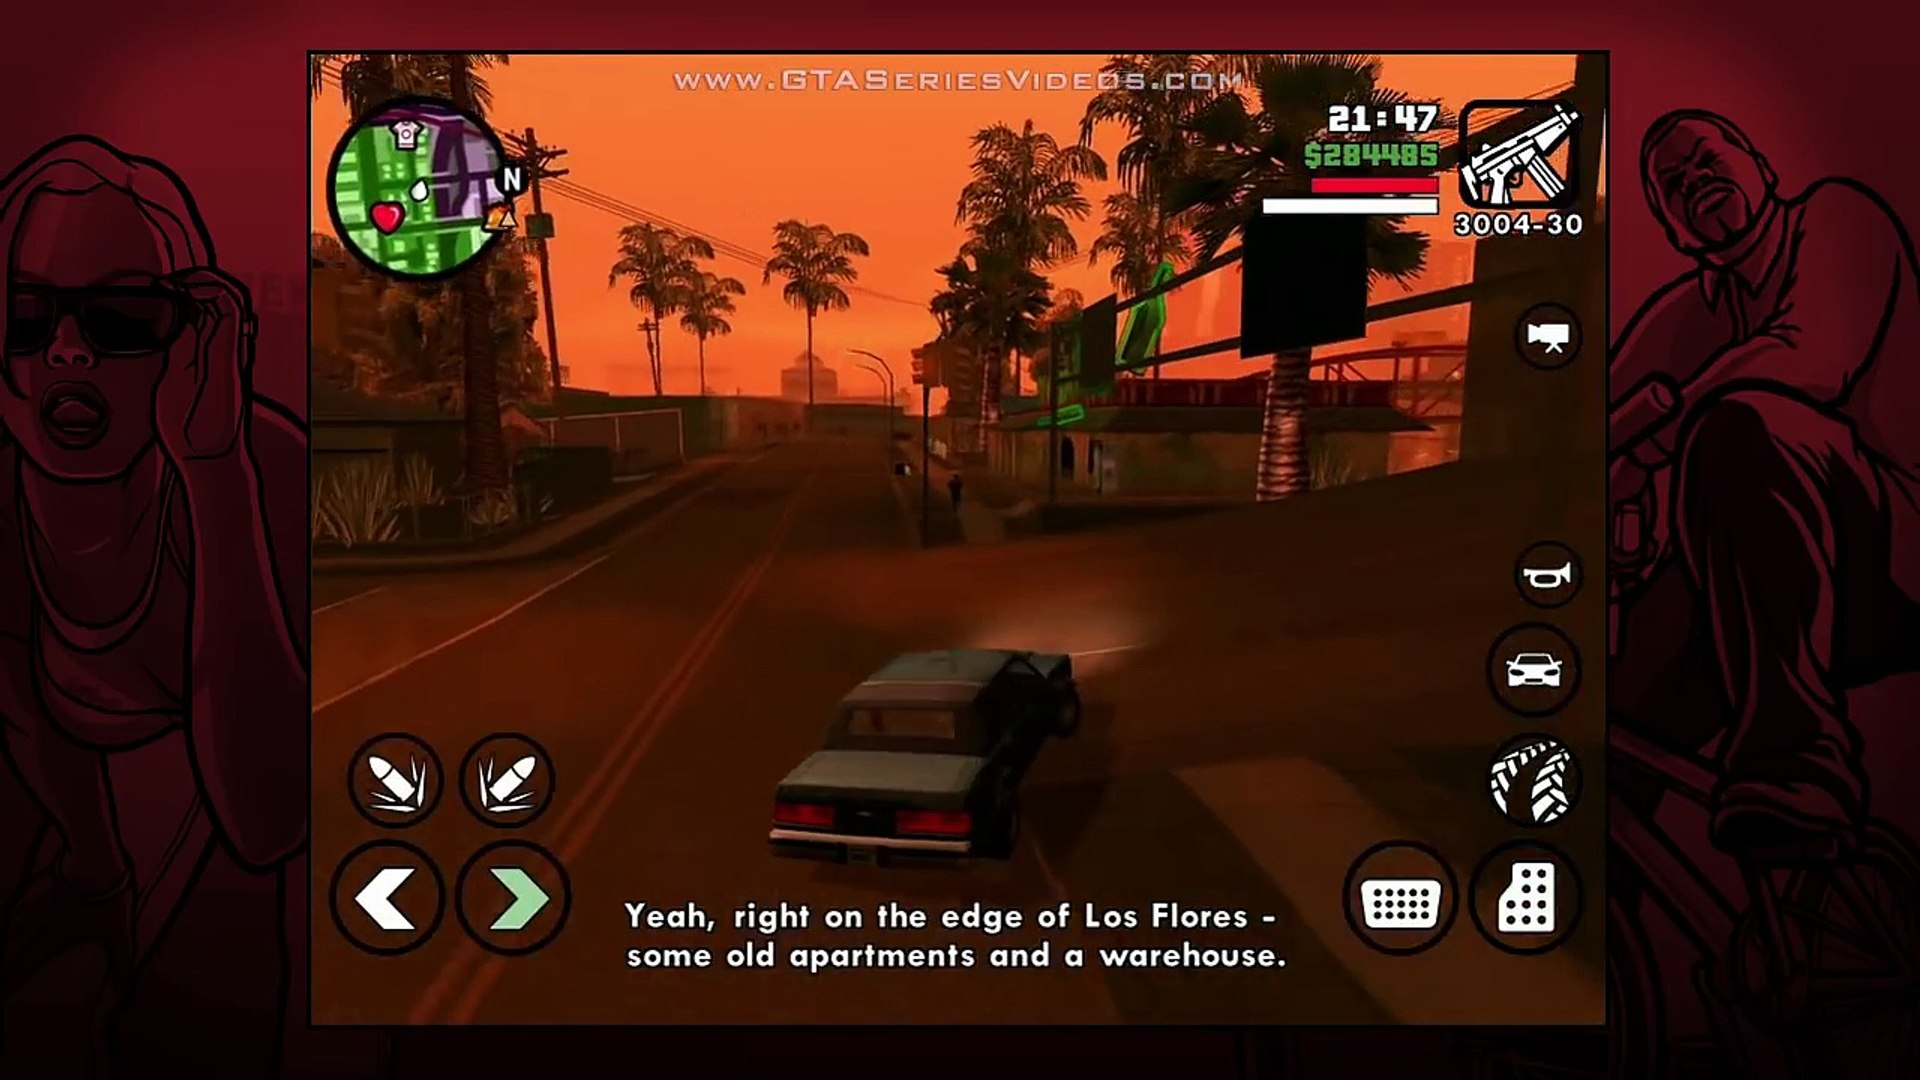 GTA San Andreas - iPad Walkthrough - Ending / Final Mission - End of the Line (HD)